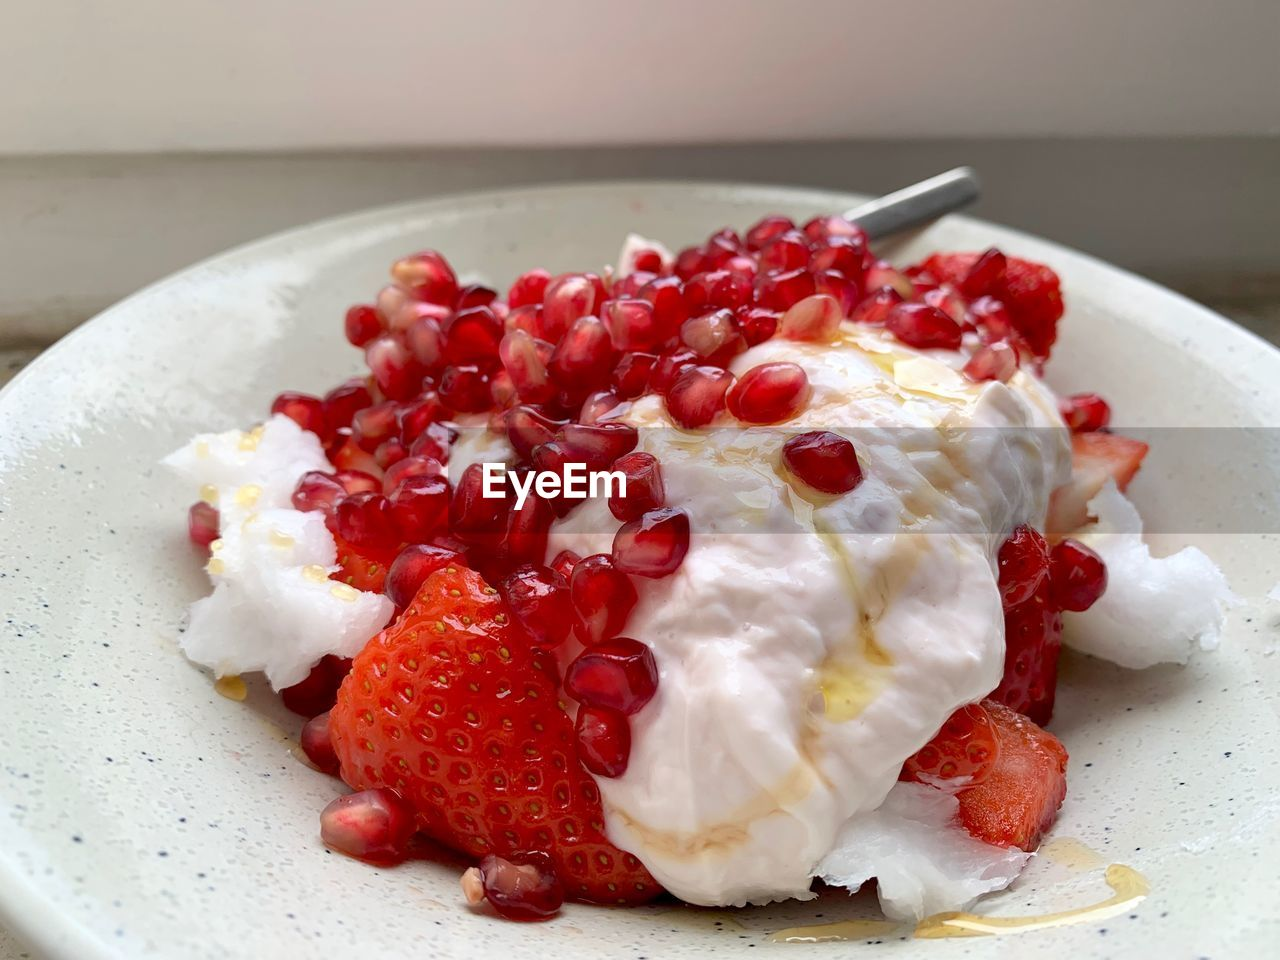 food, food and drink, freshness, healthy eating, fruit, wellbeing, red, indoors, close-up, still life, ready-to-eat, berry fruit, plate, no people, strawberry, indulgence, pomegranate, seed, table, serving size, breakfast, yogurt, temptation